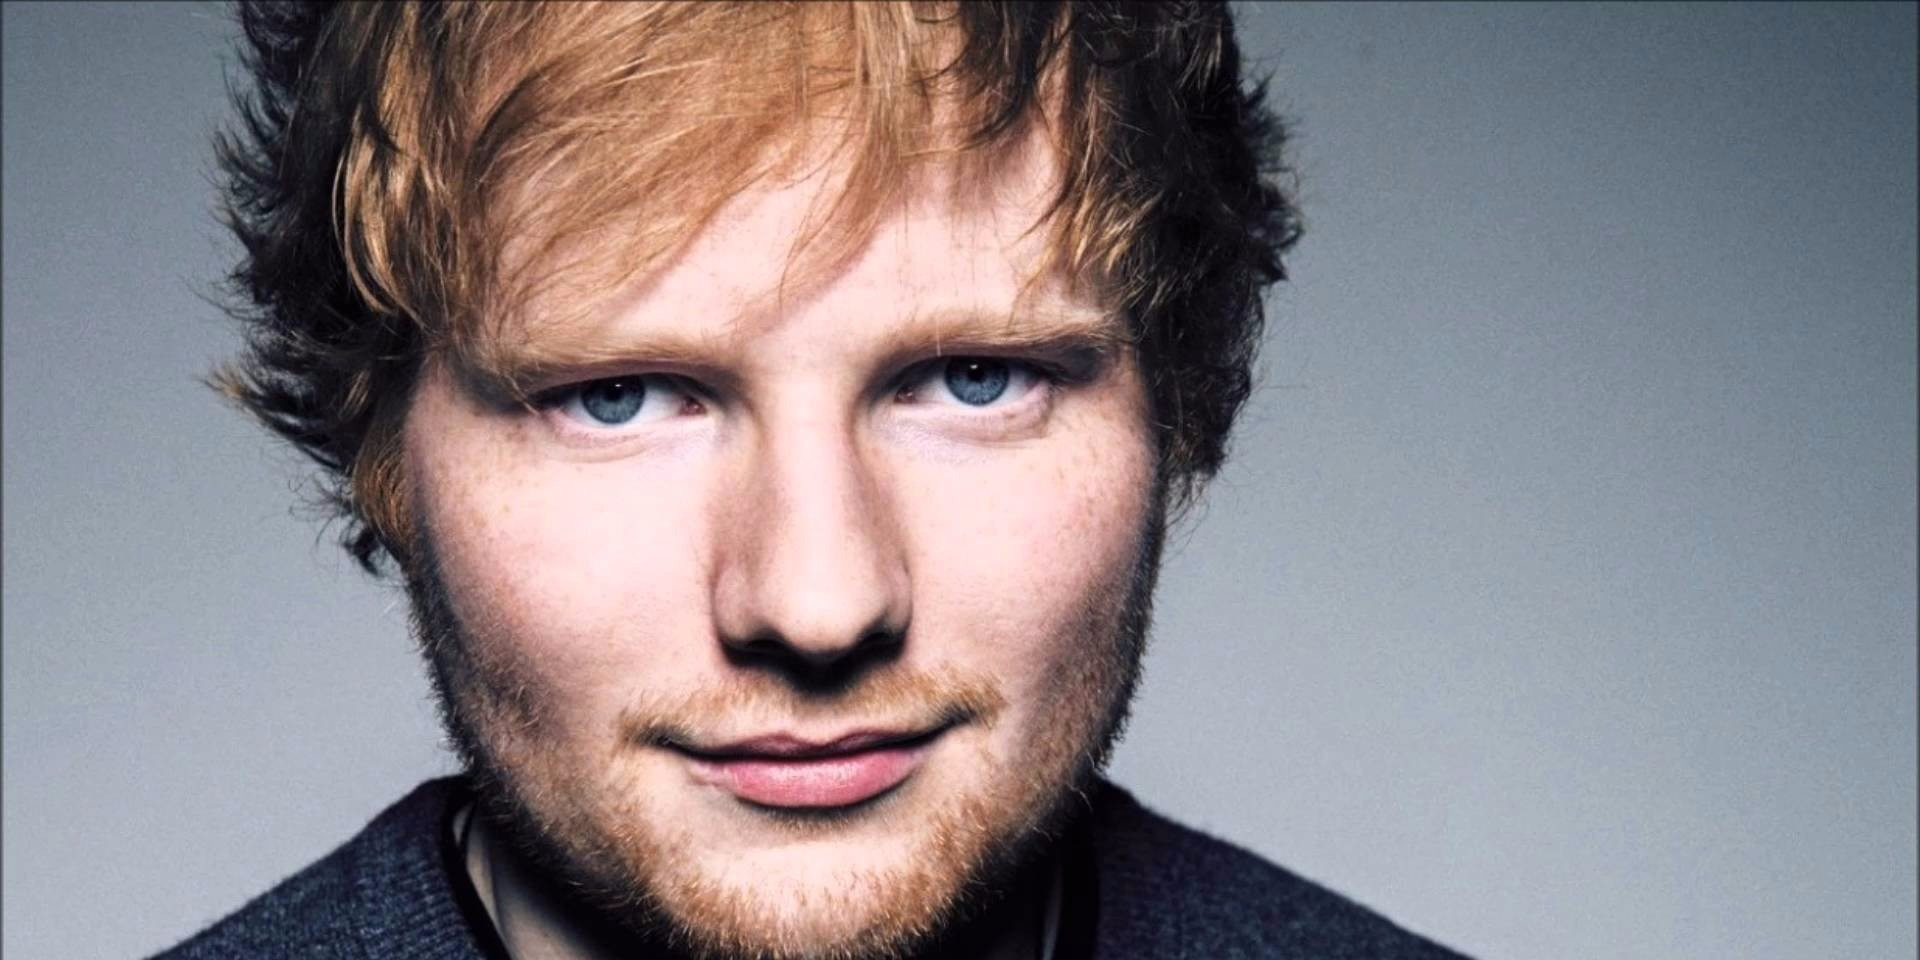 Ed Sheeran tickets are still available but scalpers are selling them online for twice the price